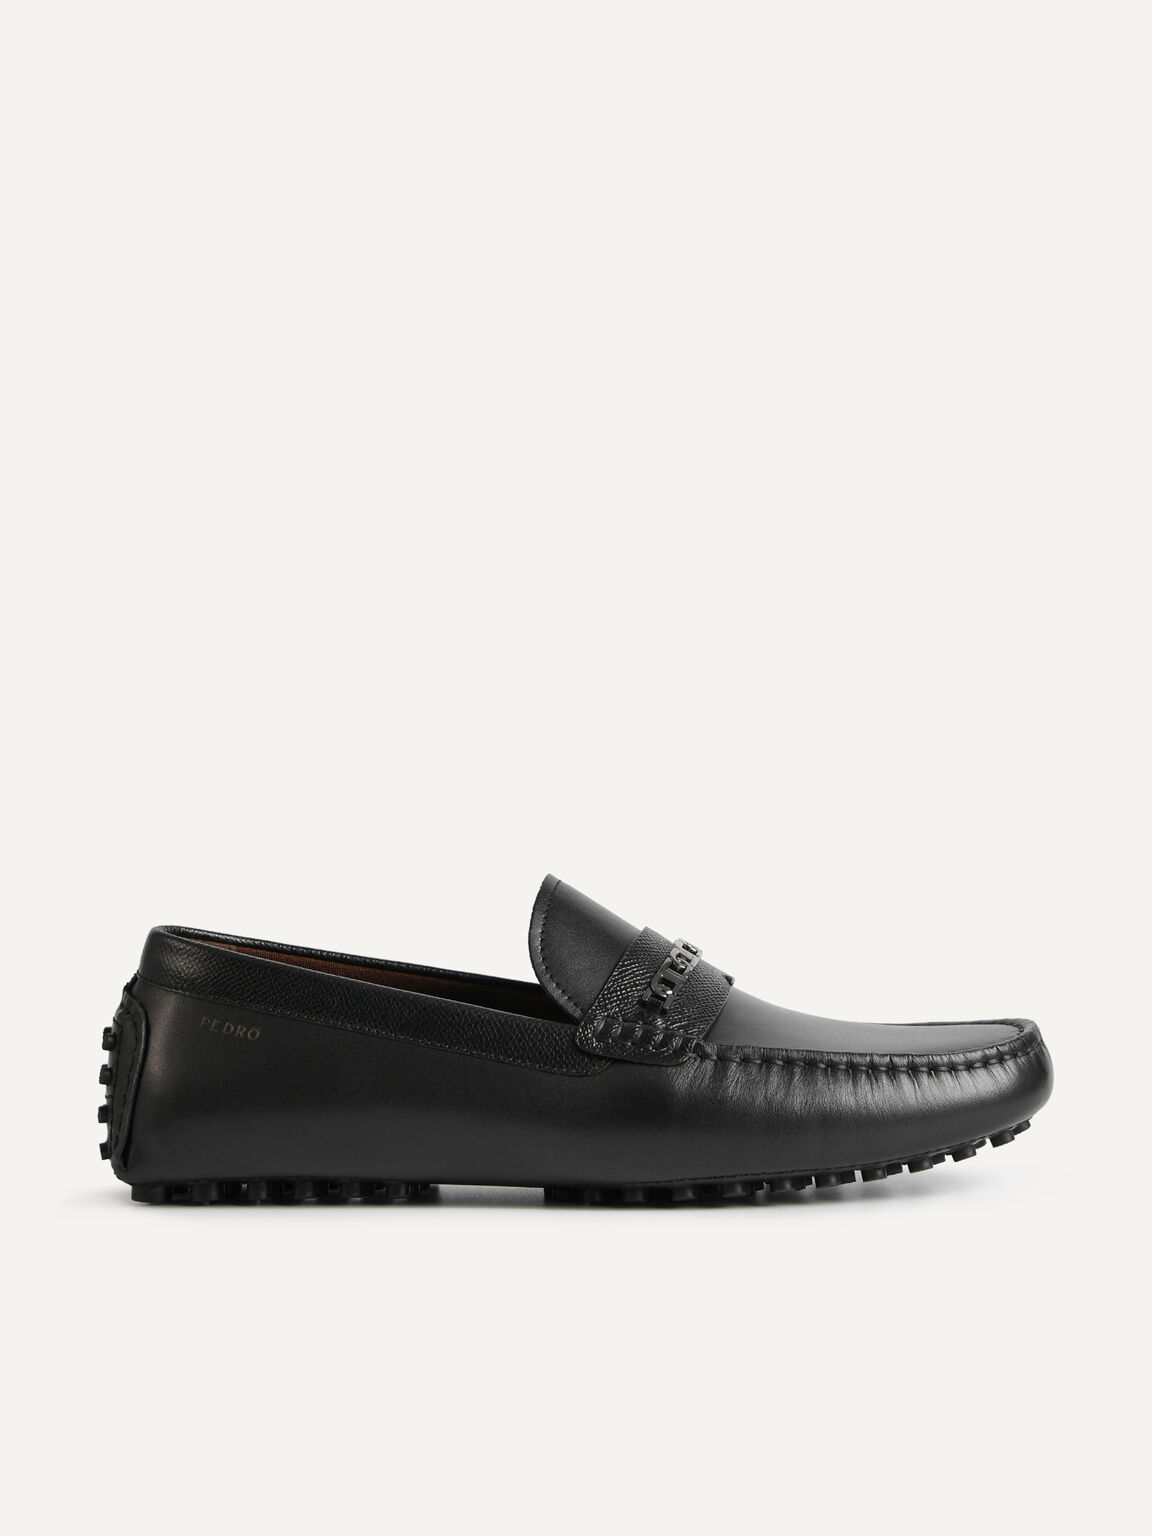 Icon leather Moccasins, Black, hi-res